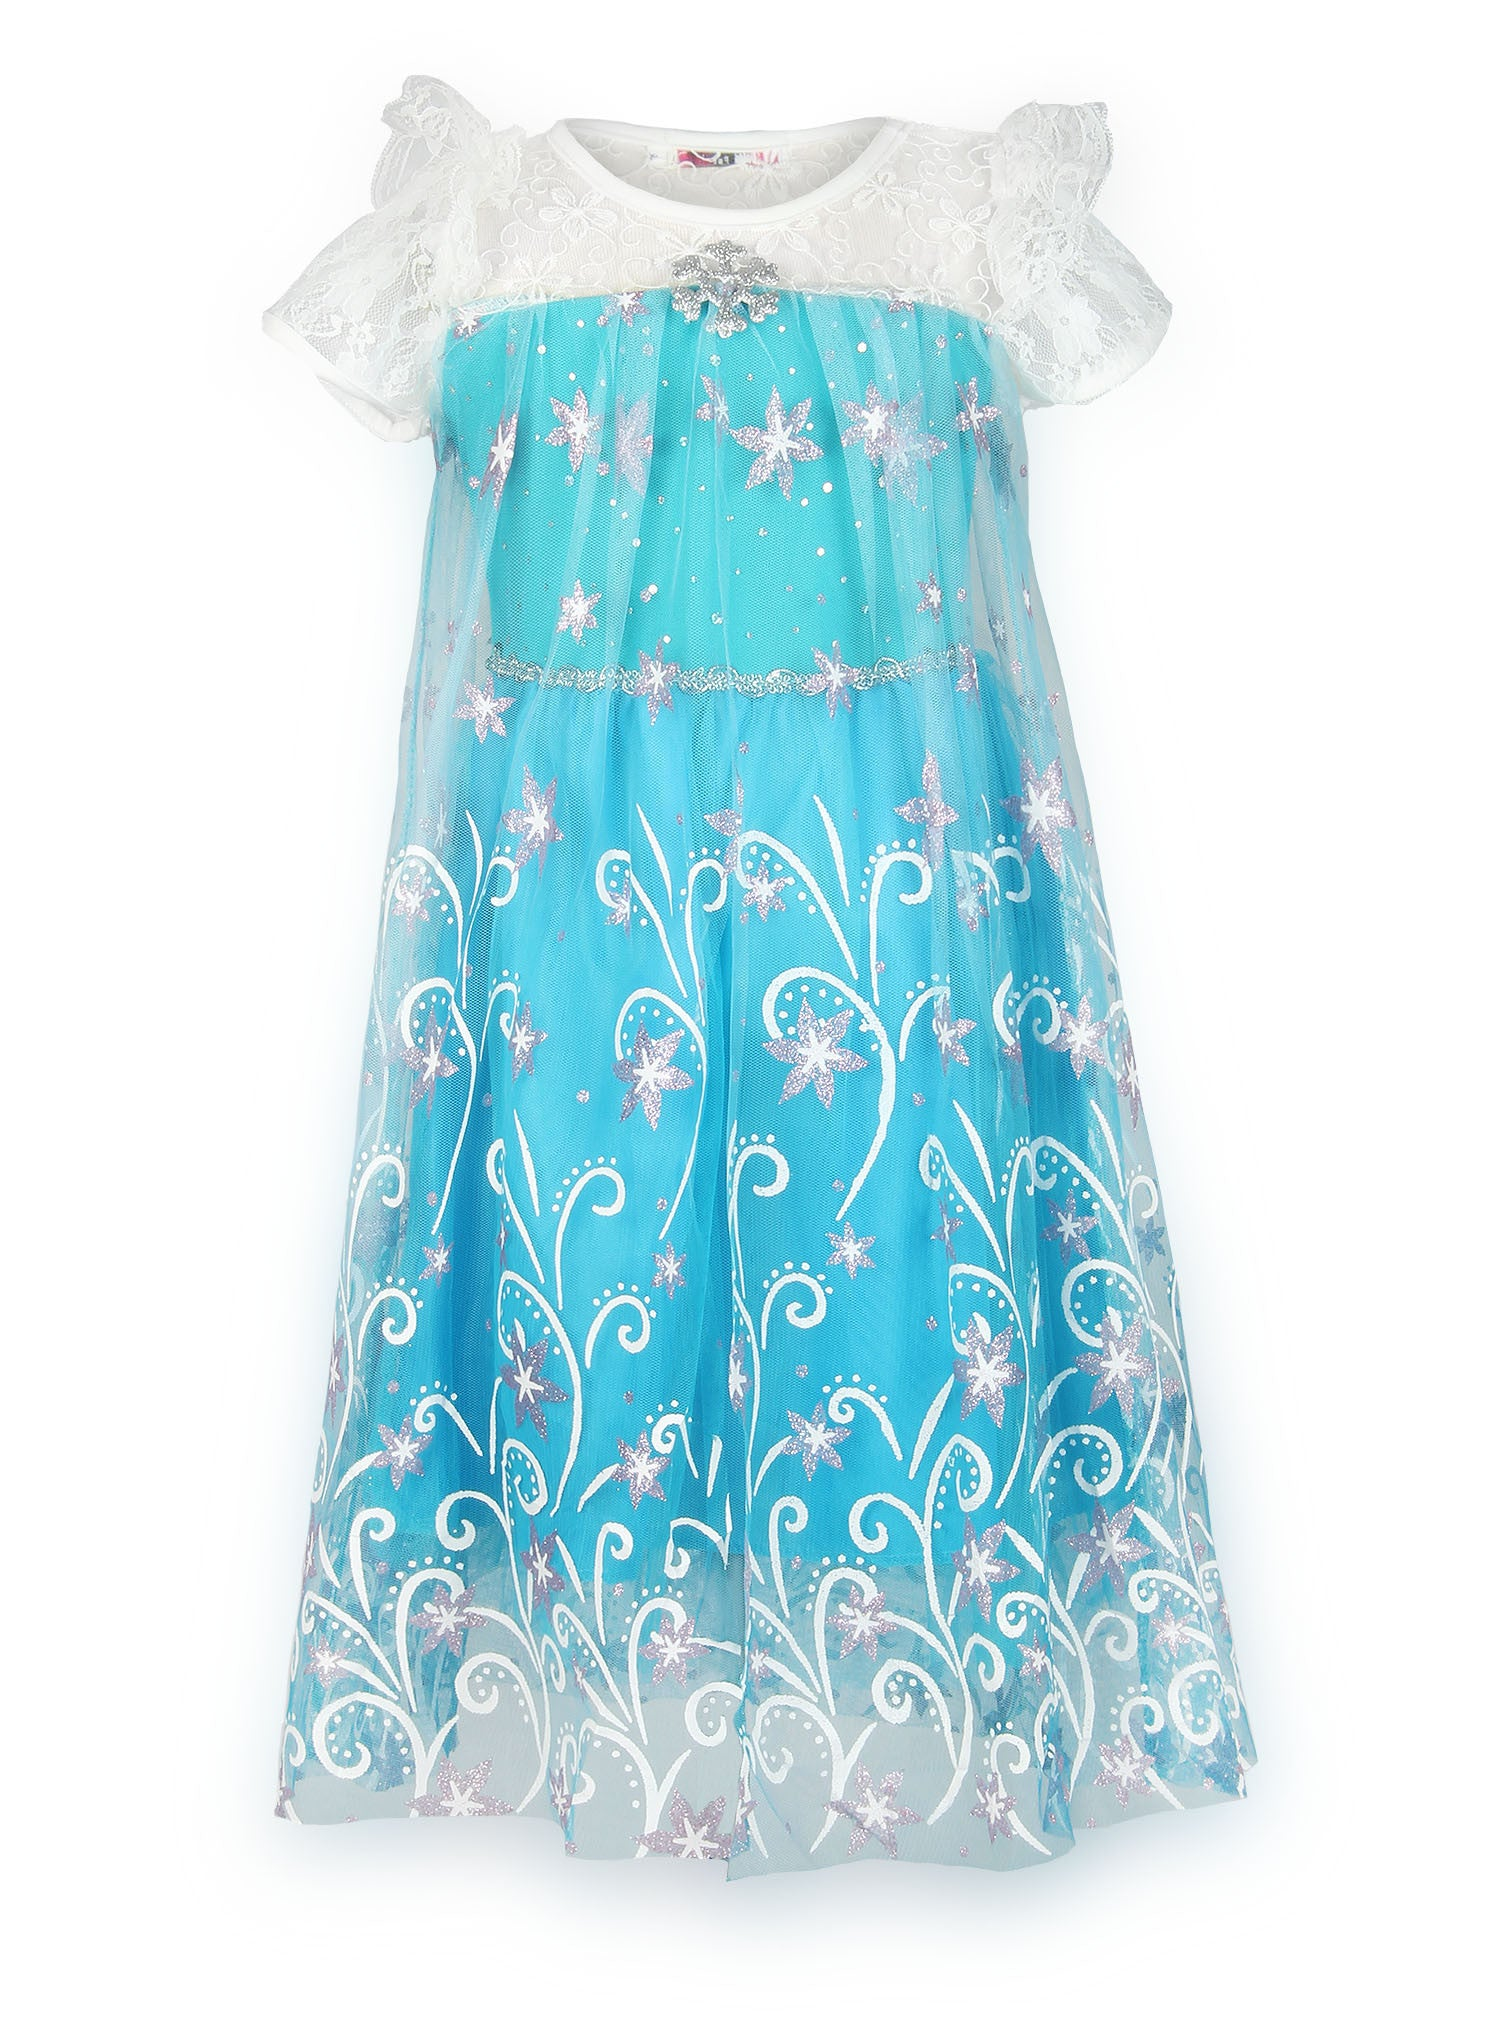 JerrisApparel Little Girls Princess Flower Print Party Dress Blue